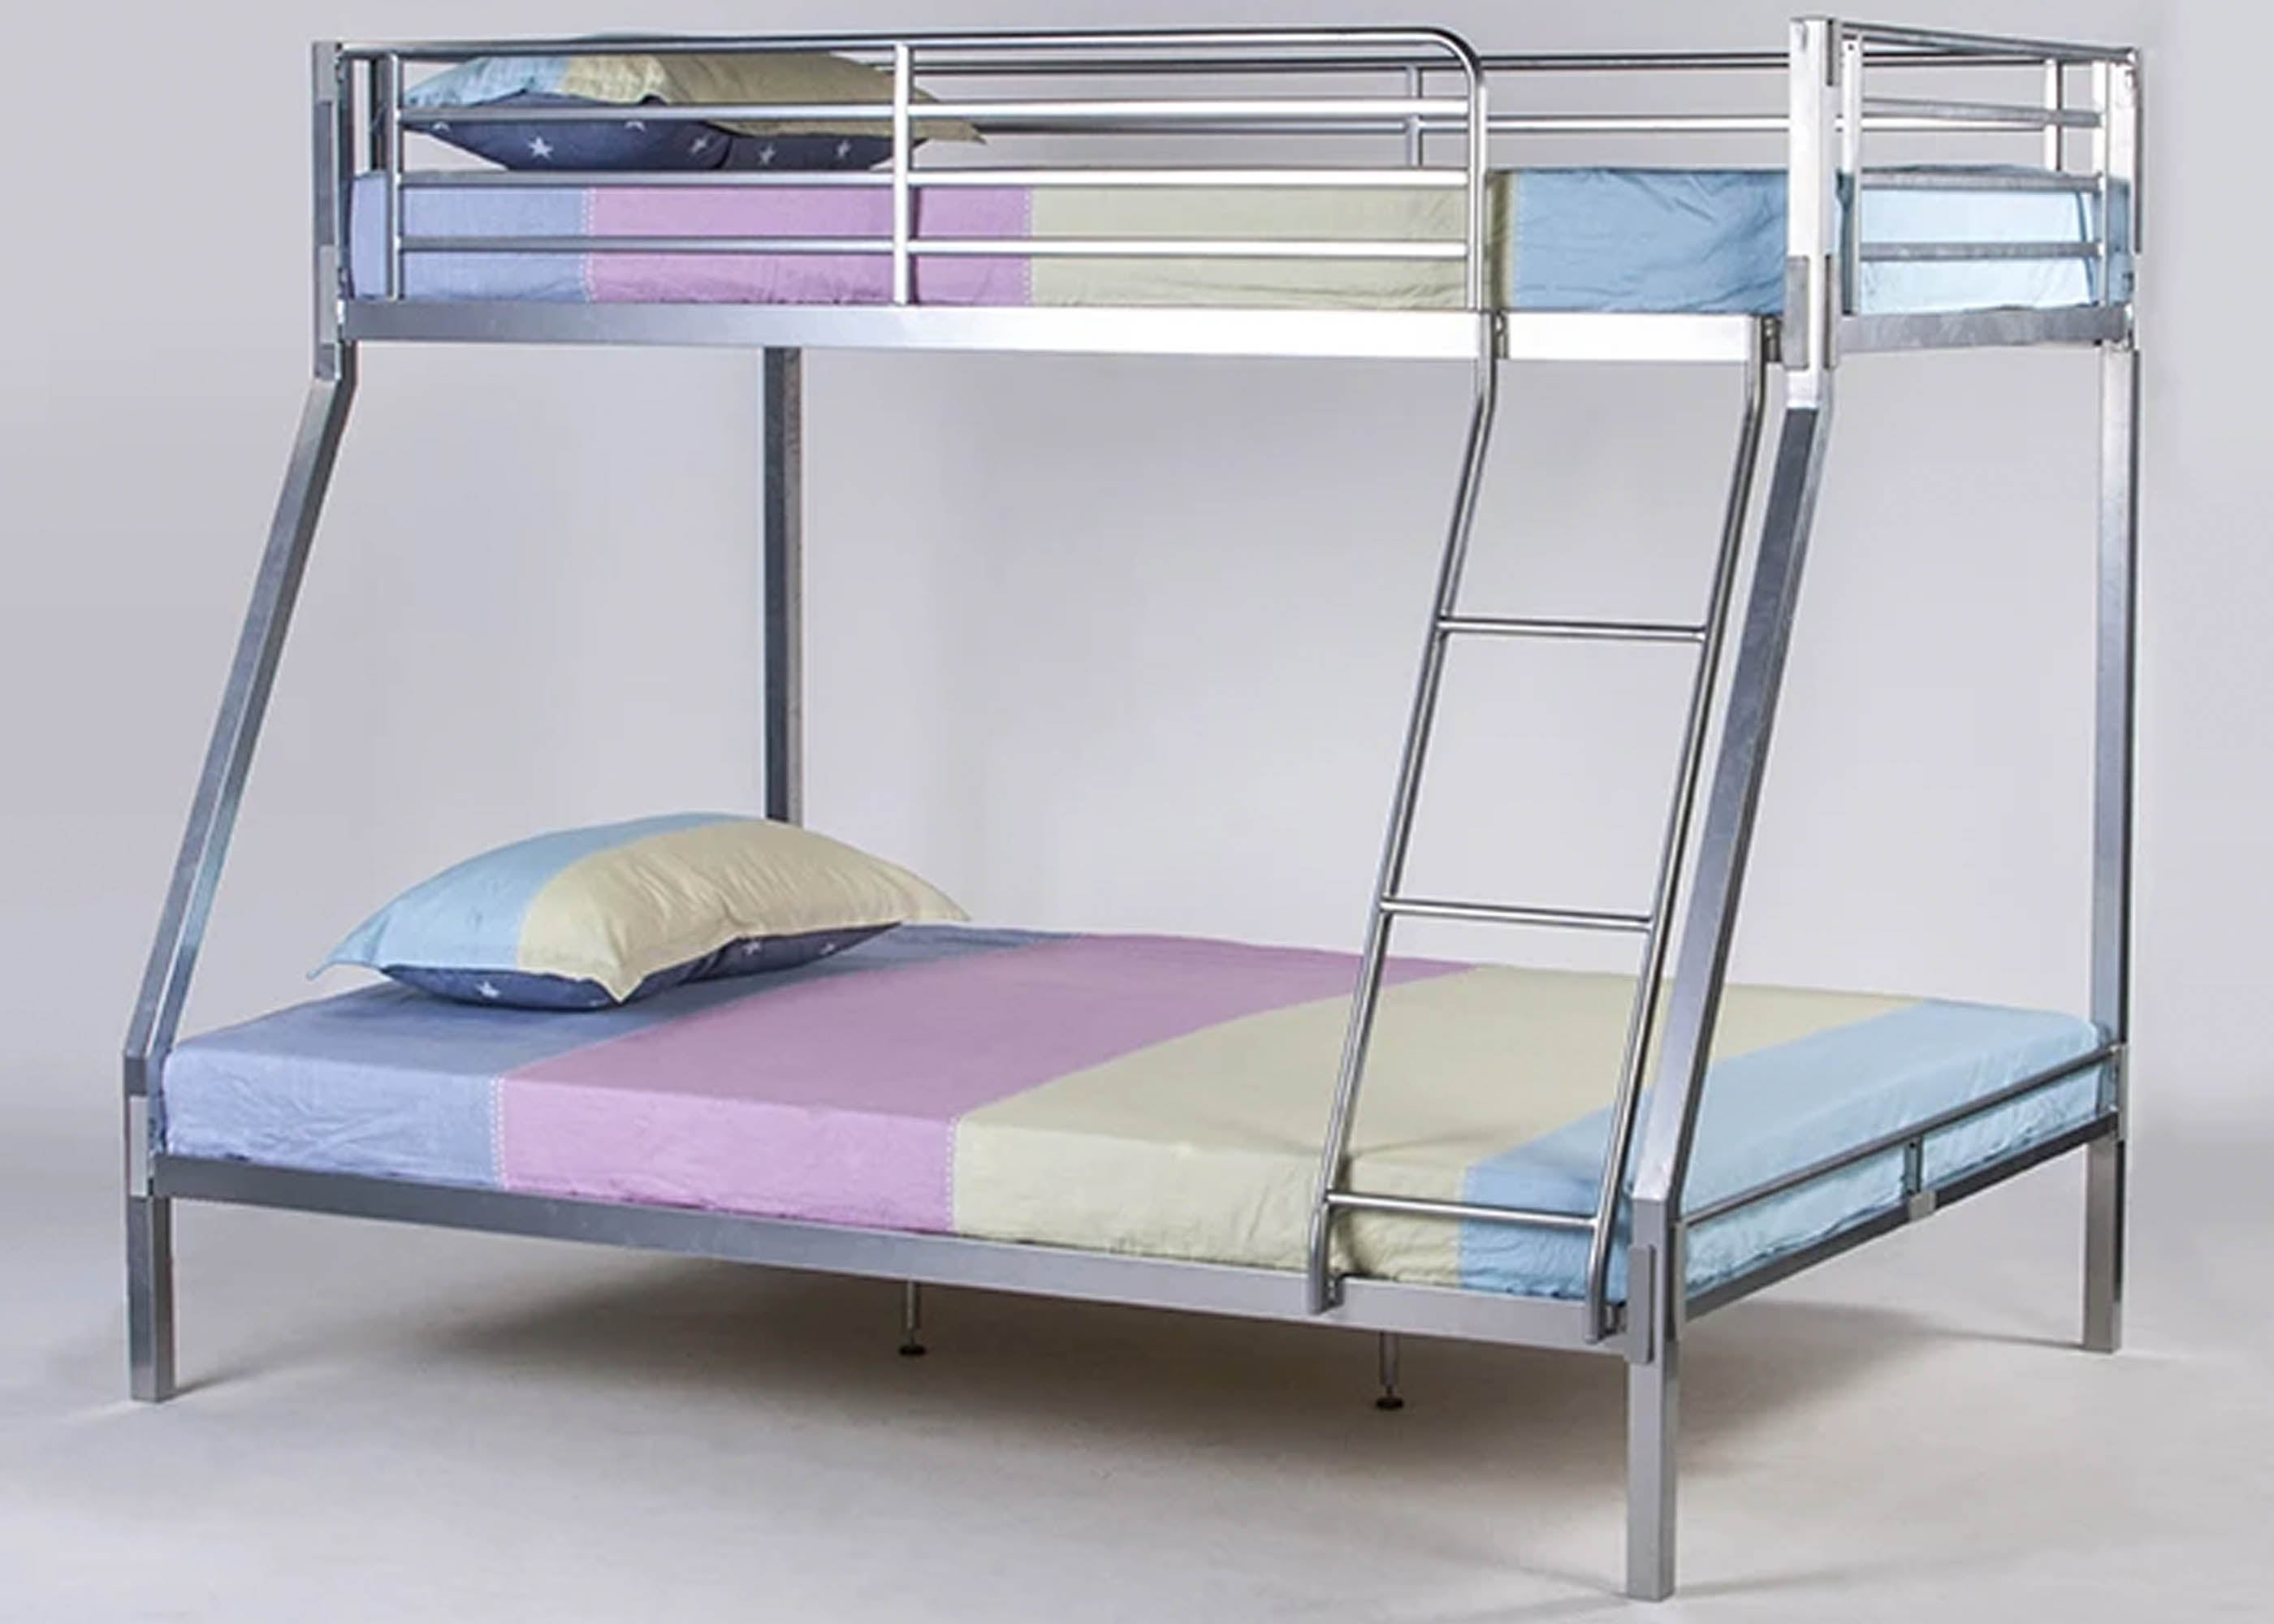 Picture of: Strong Metal Triple Bunk Bed Mattress Reinforced Beds